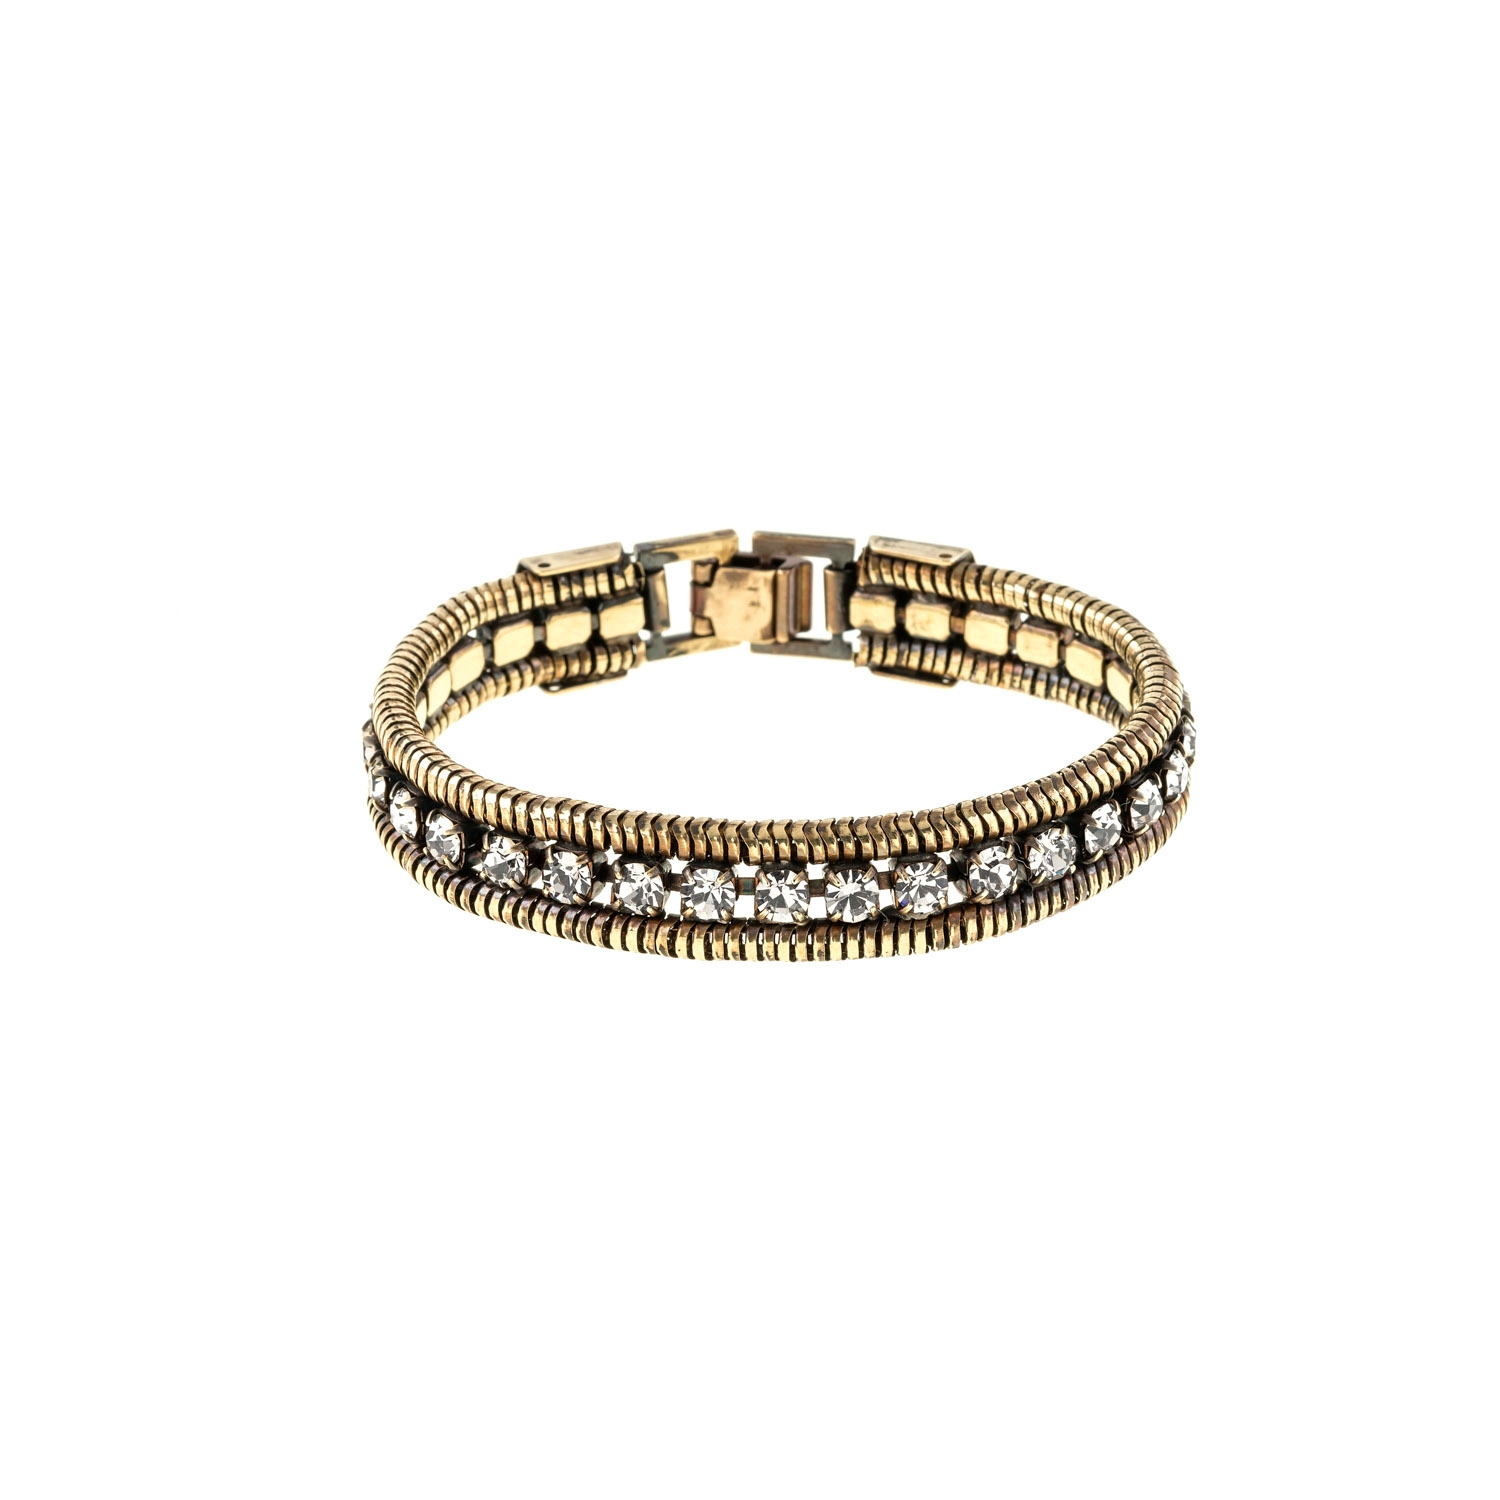 HALO & CO BLACK DIAMOND CRYSTAL AND ROPE CHAIN CUFF IN DARK ANTIQUE GOLD COLOUR